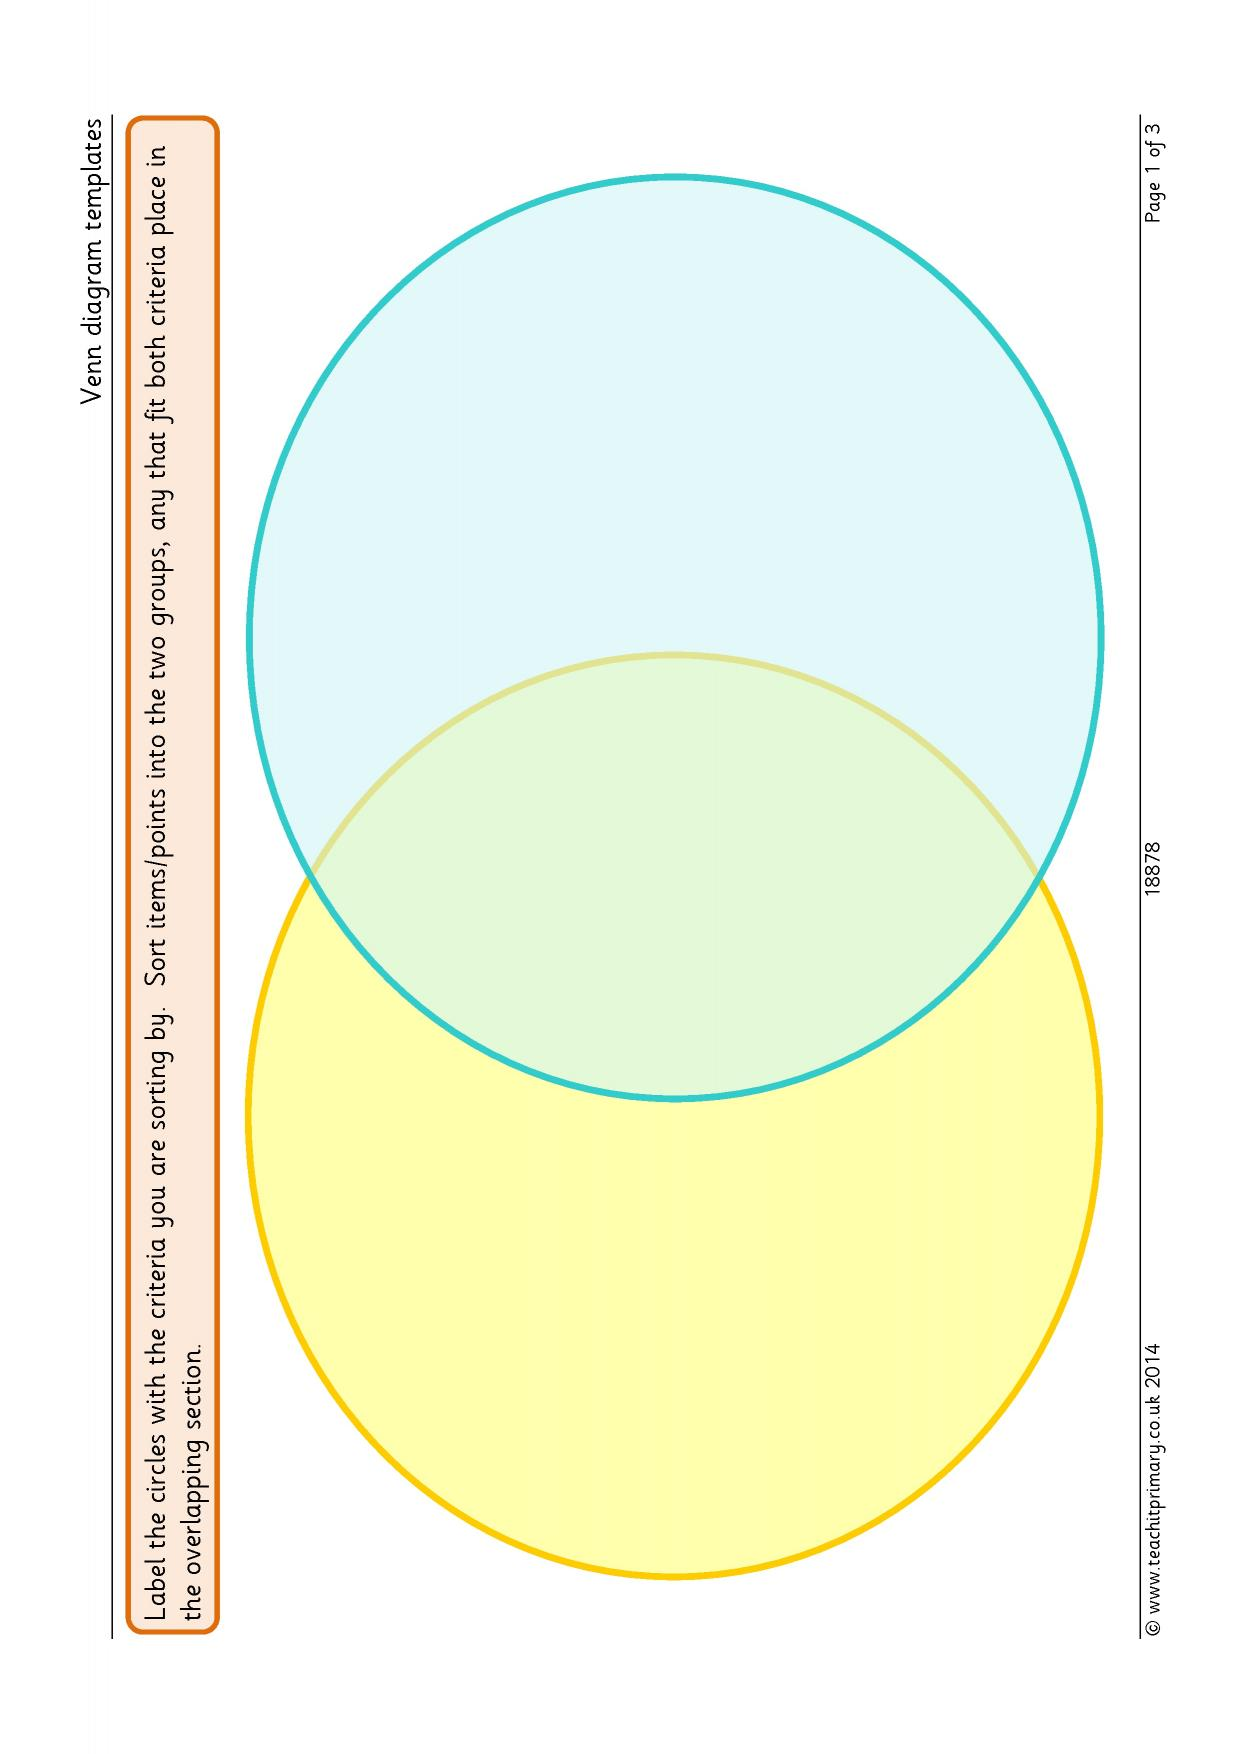 Venn Diagram Template Pages Software Free Download